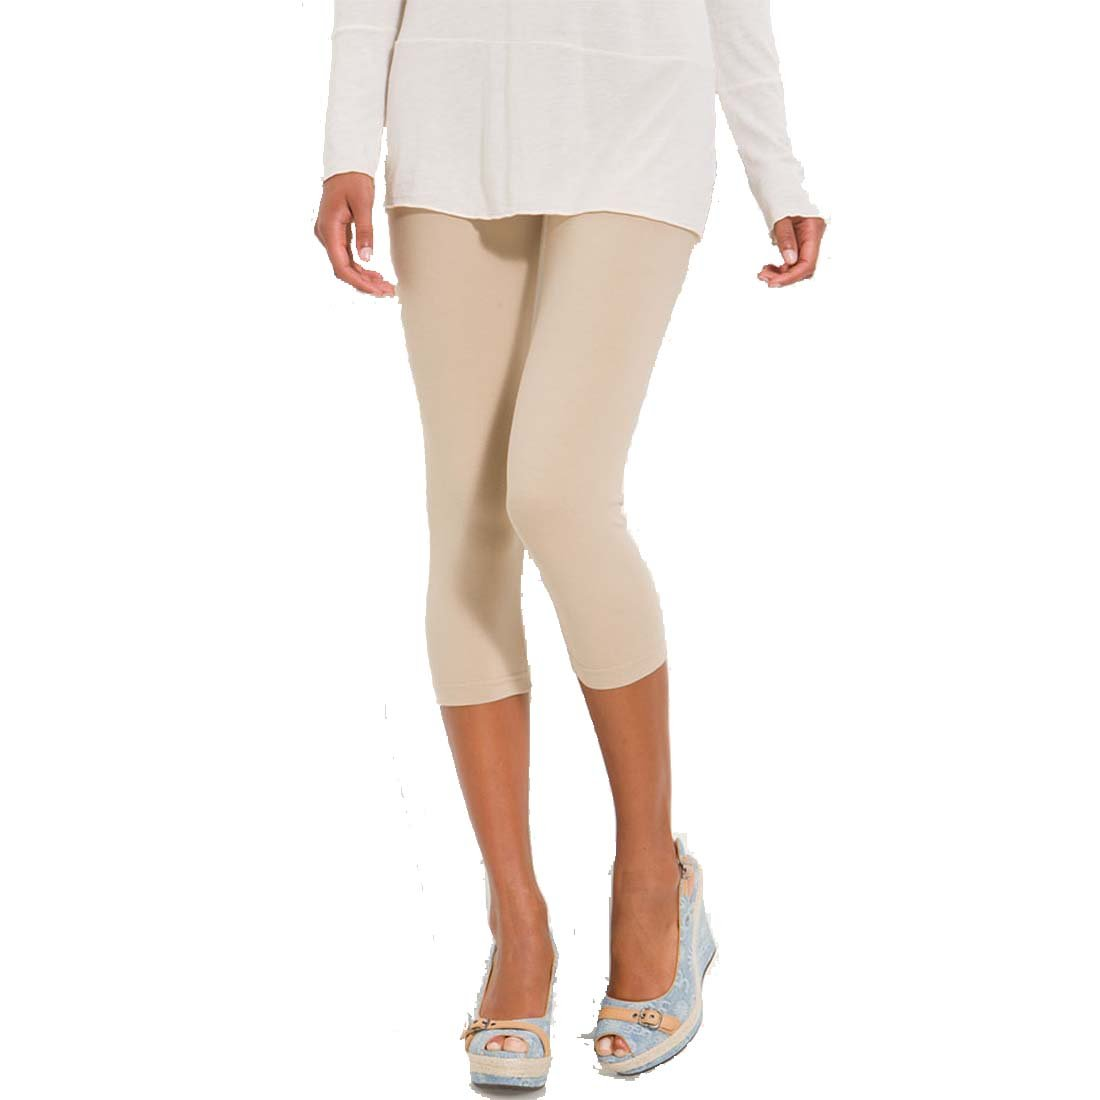 Discover Cream Colored leggings at Zazzle! Use your own images and text or choose from thousands of patterns and designs. Start your search today!